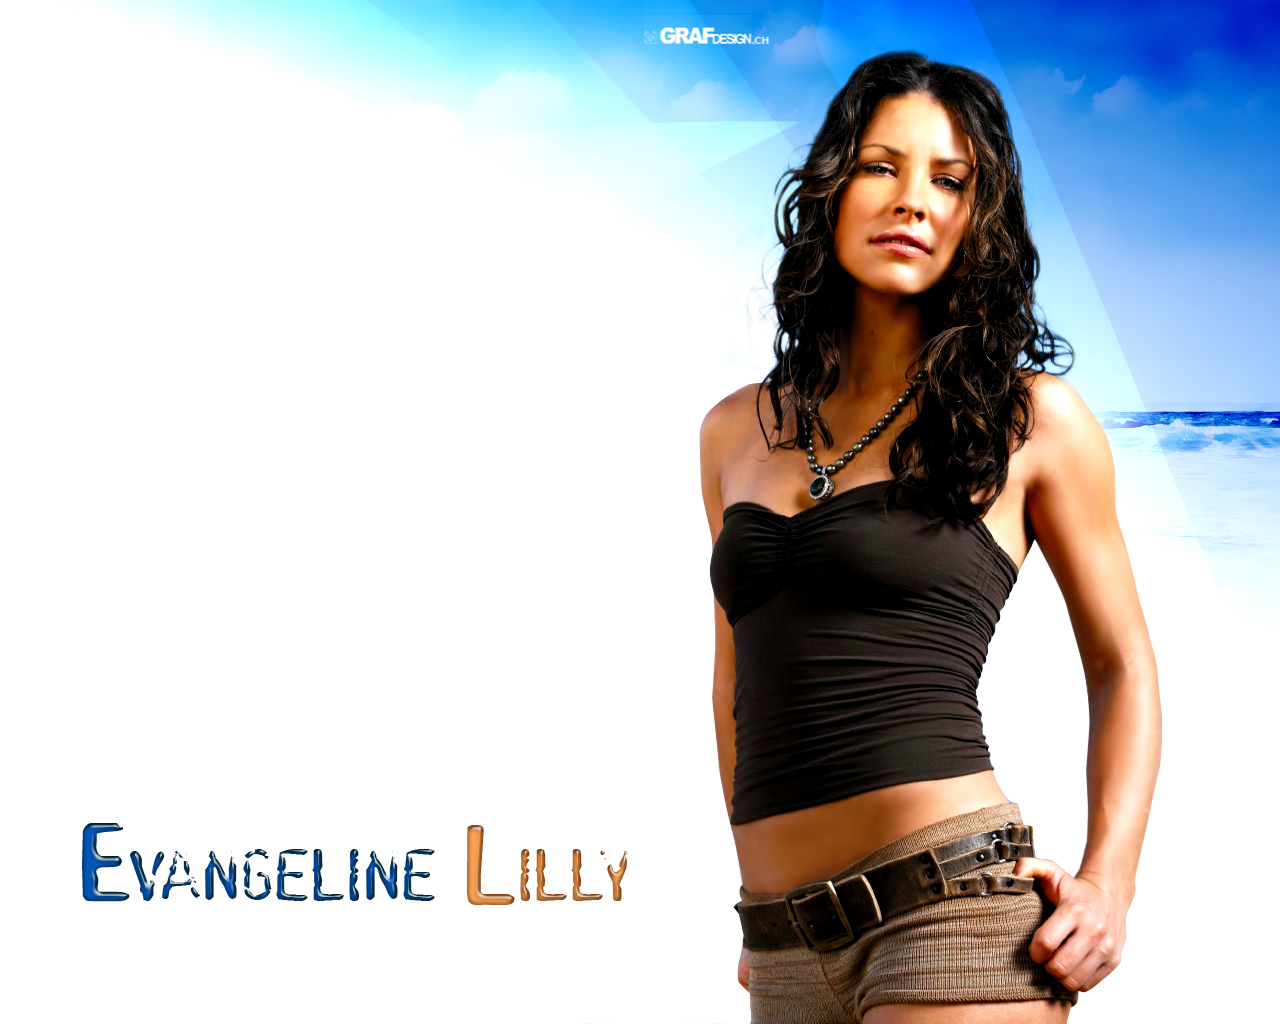 lilly Wallpapers Photos images Evangeline lilly pictures 8785 1280x1024